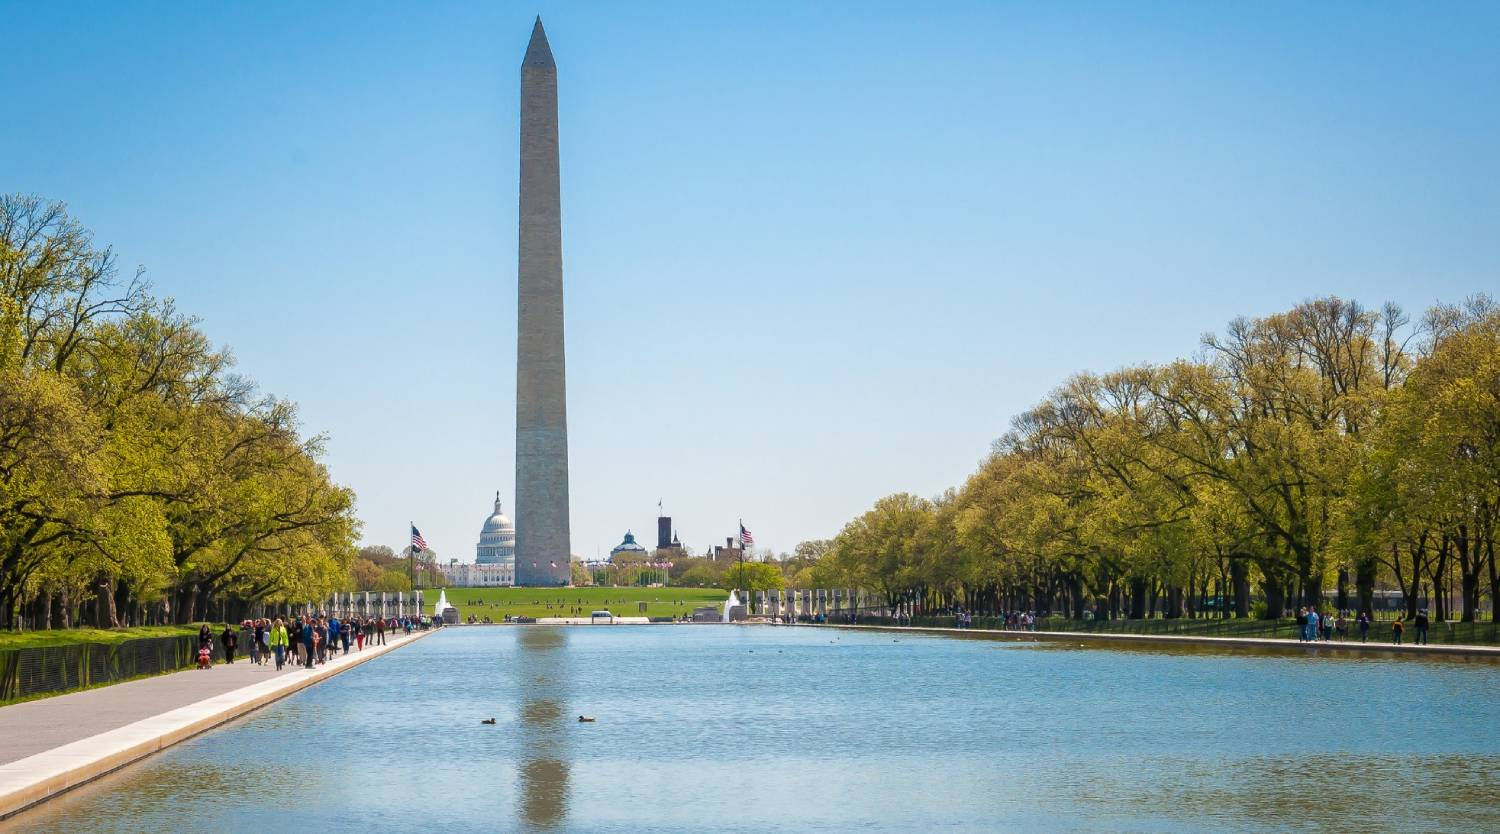 National Mall - Things To Do In Washington, D.C.